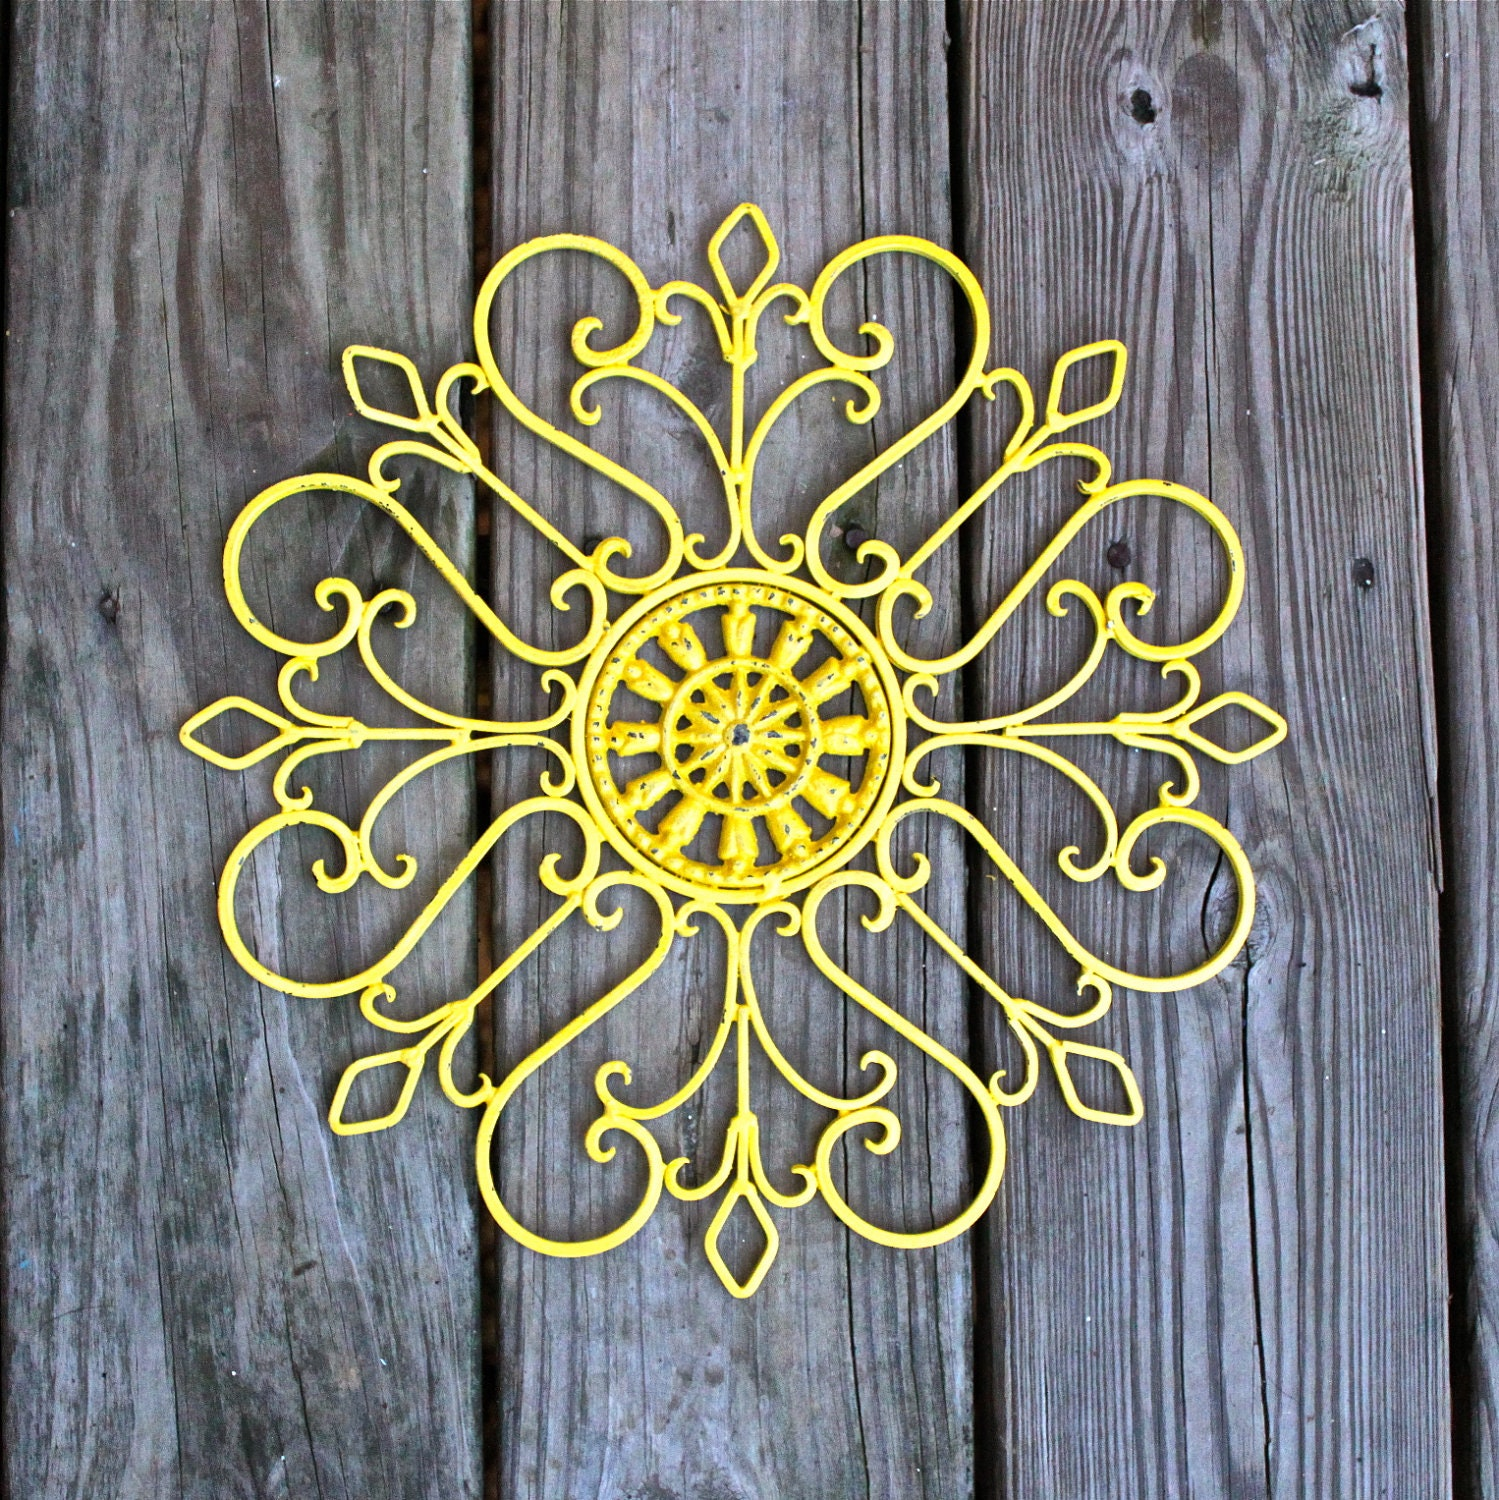 Distressed Metal Wall Decor : Metal wall fixture yellow distressed patio by aquaxpressions